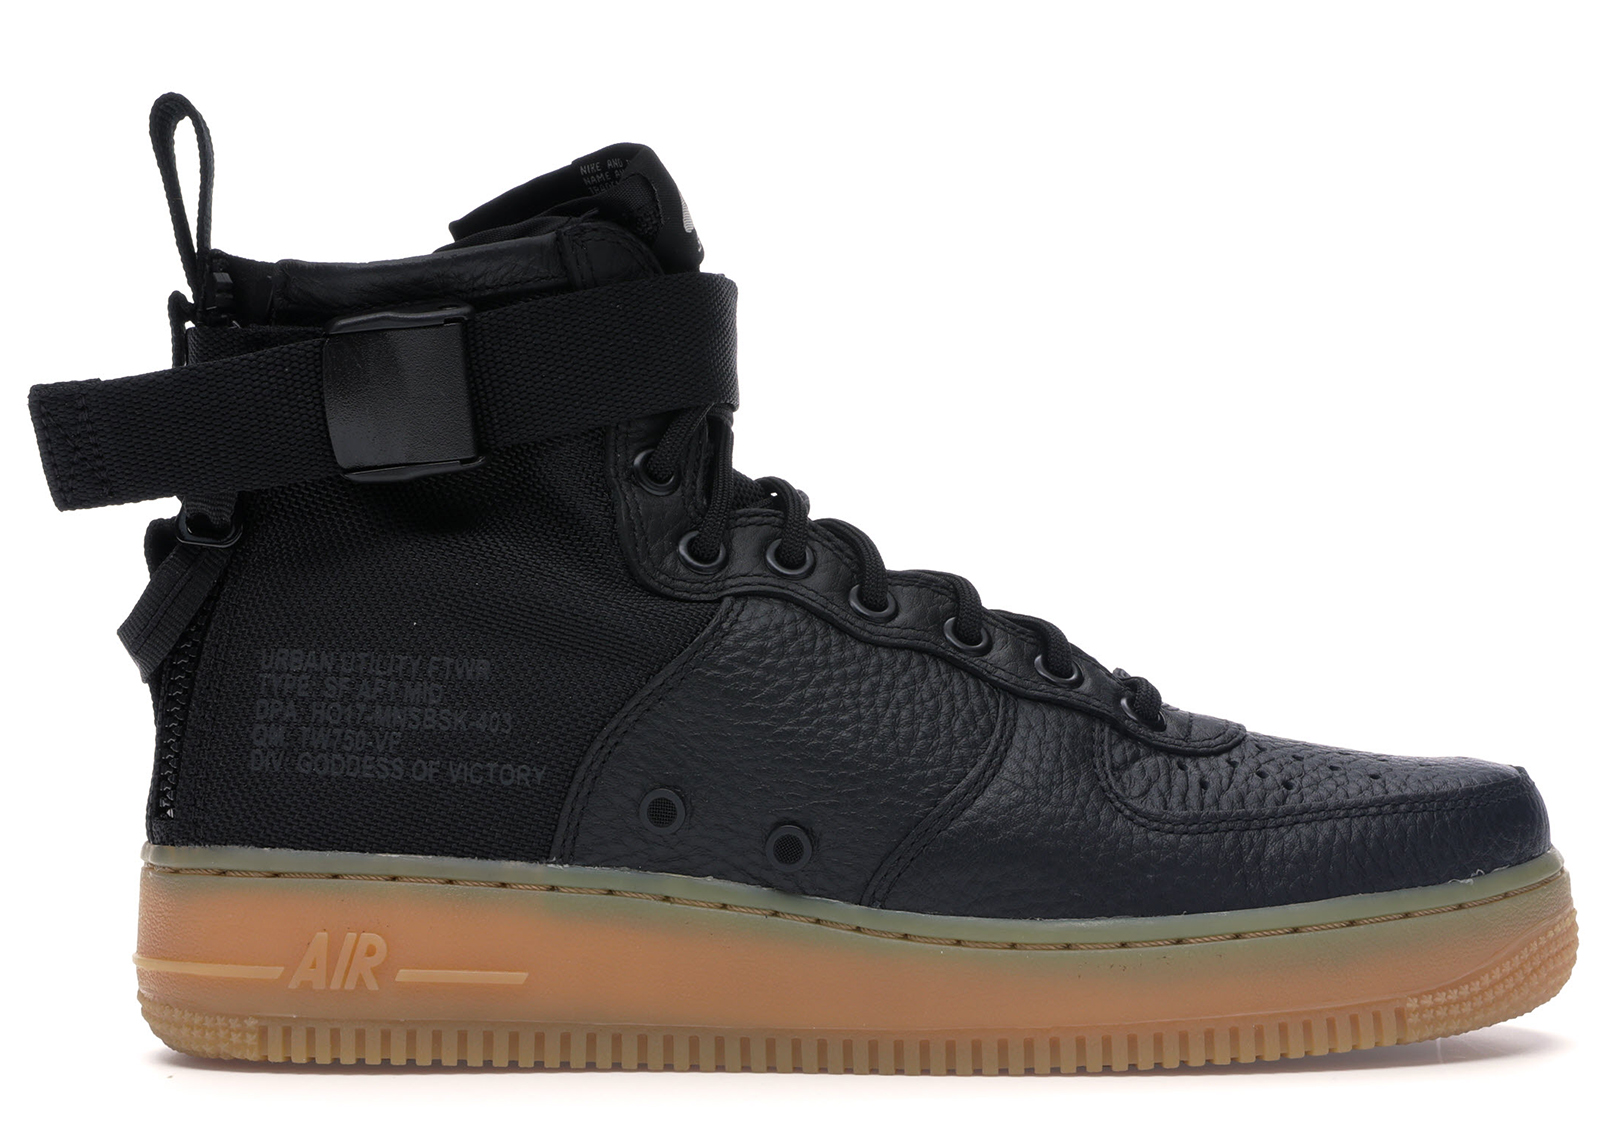 Black Gum Air Force Nike Mid Sf 1 zpUMVqS